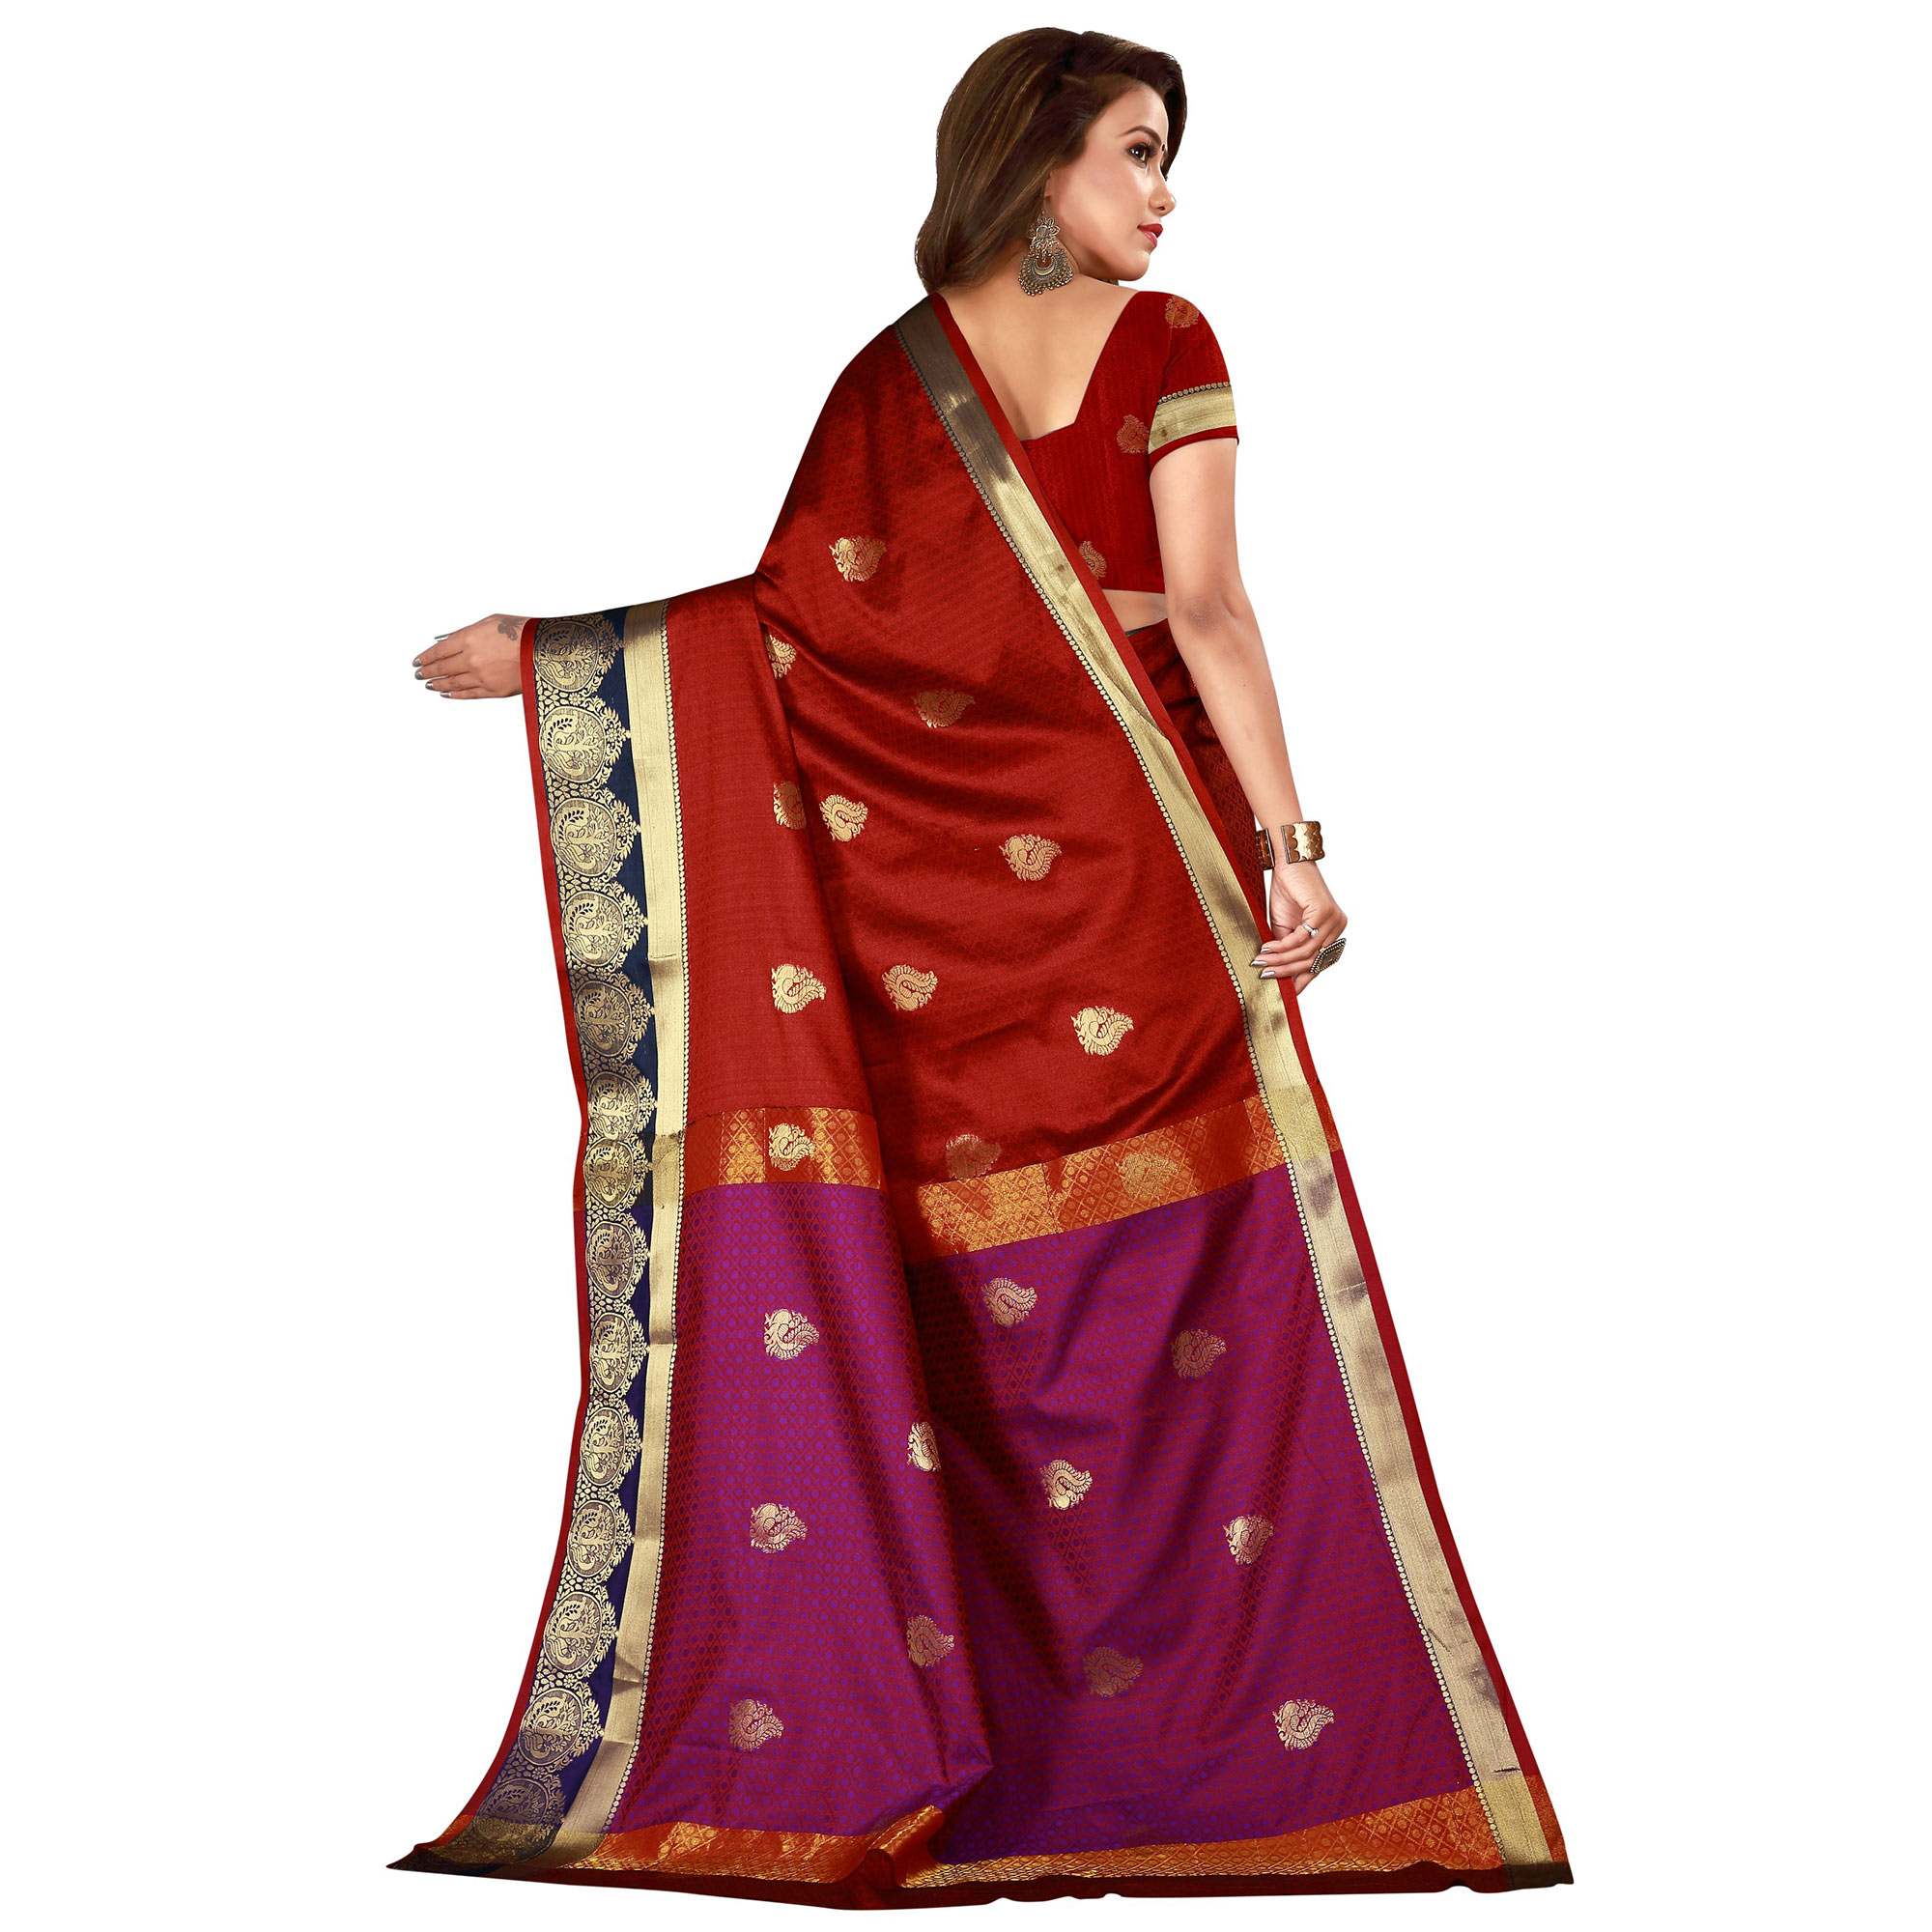 Flattering Maroon Colored Festive Wear Woven Cotton Silk Saree